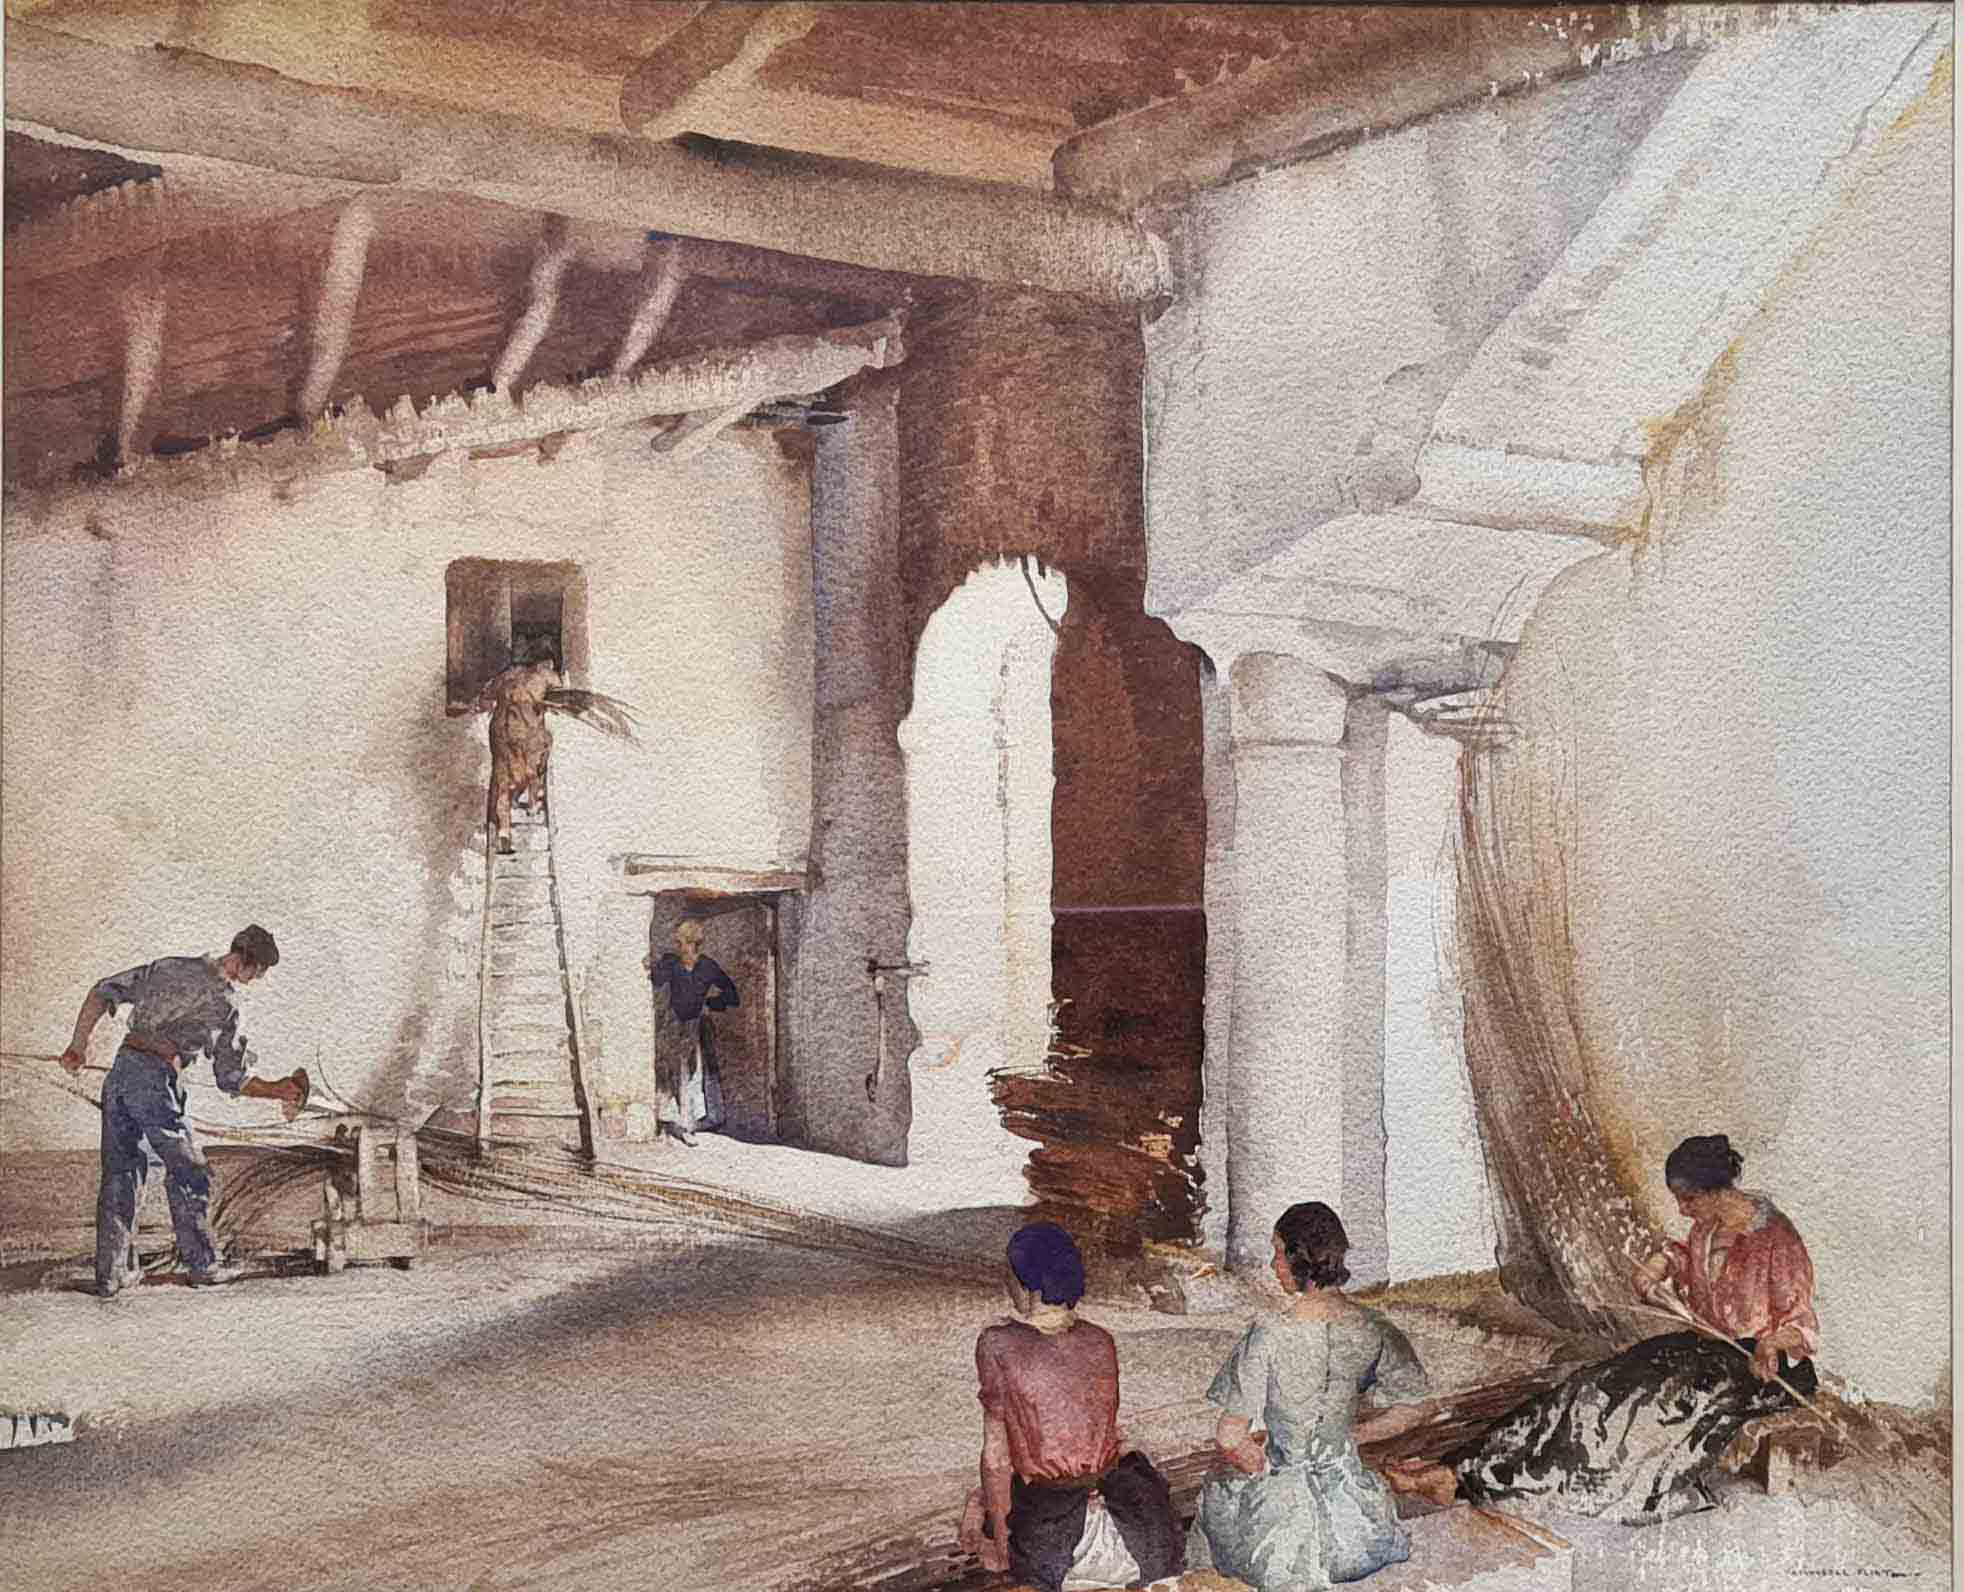 sir william russell flint, osier en Provence, France, original watercolour painting